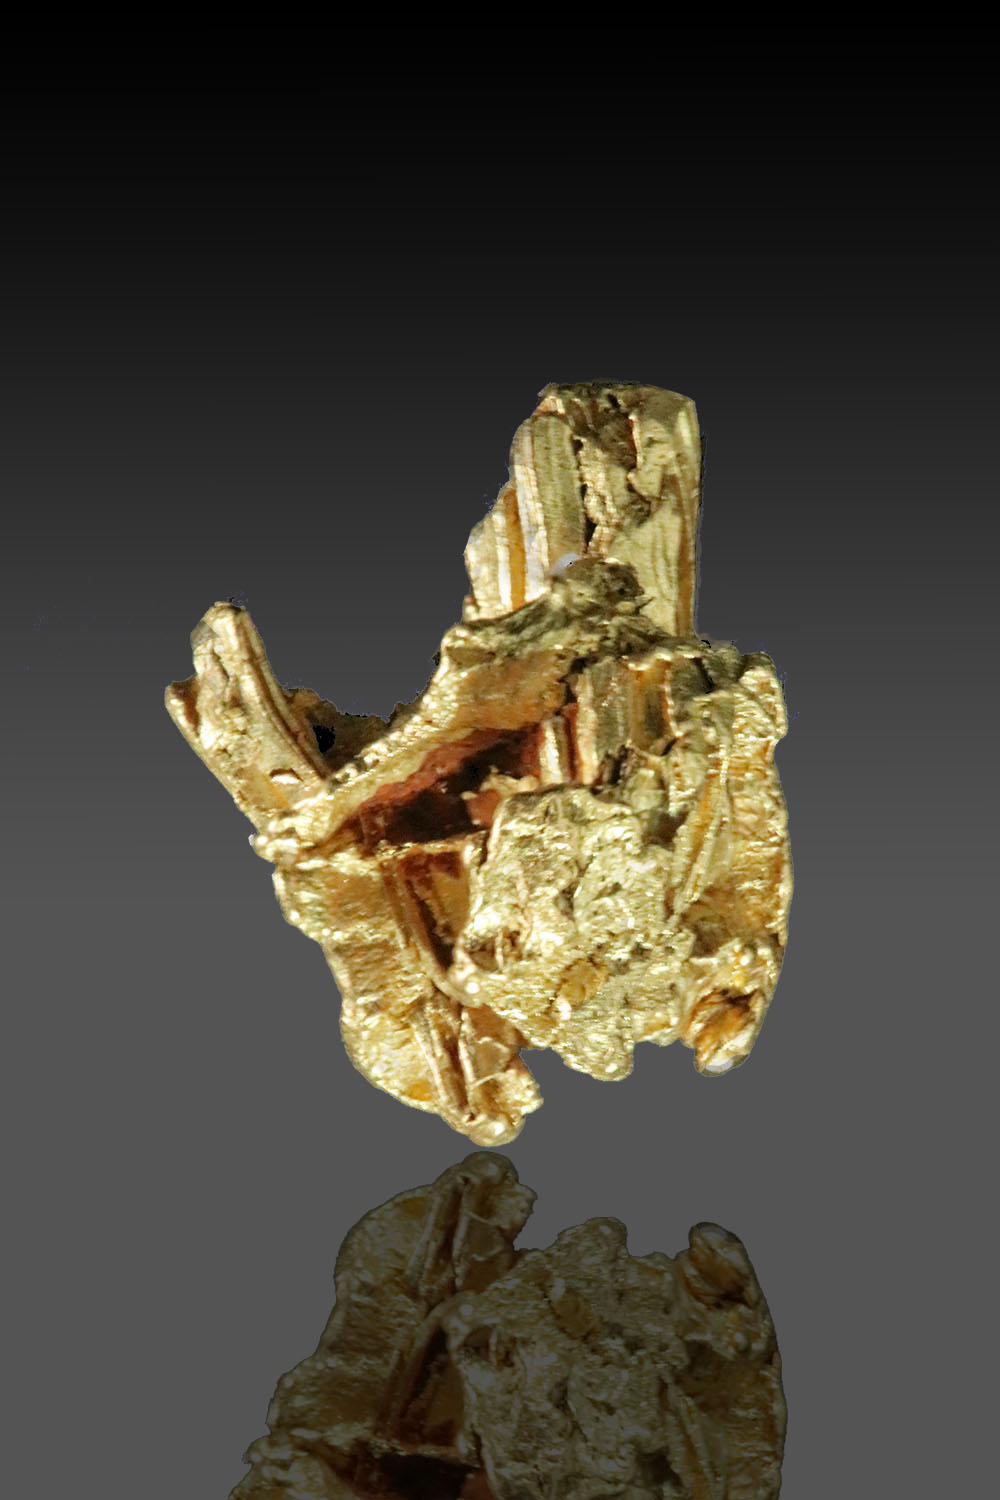 Dimensional Gold Crystal from the Yukon - Very rare